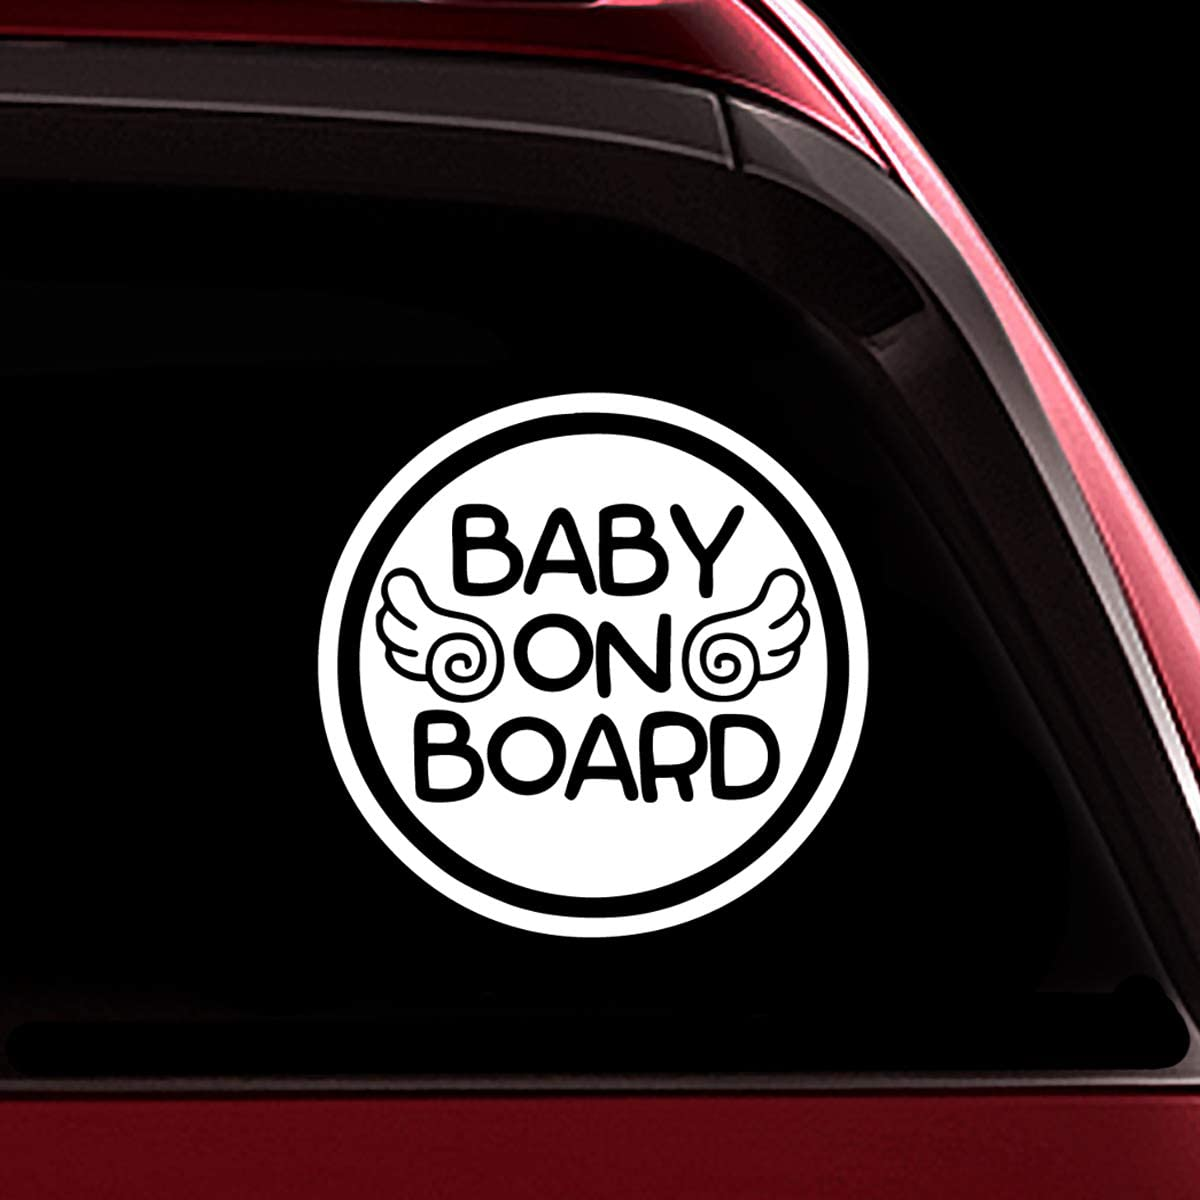 Baby on Board kids safety car bumper window vinyl sticker decal sign 1st FREE PP